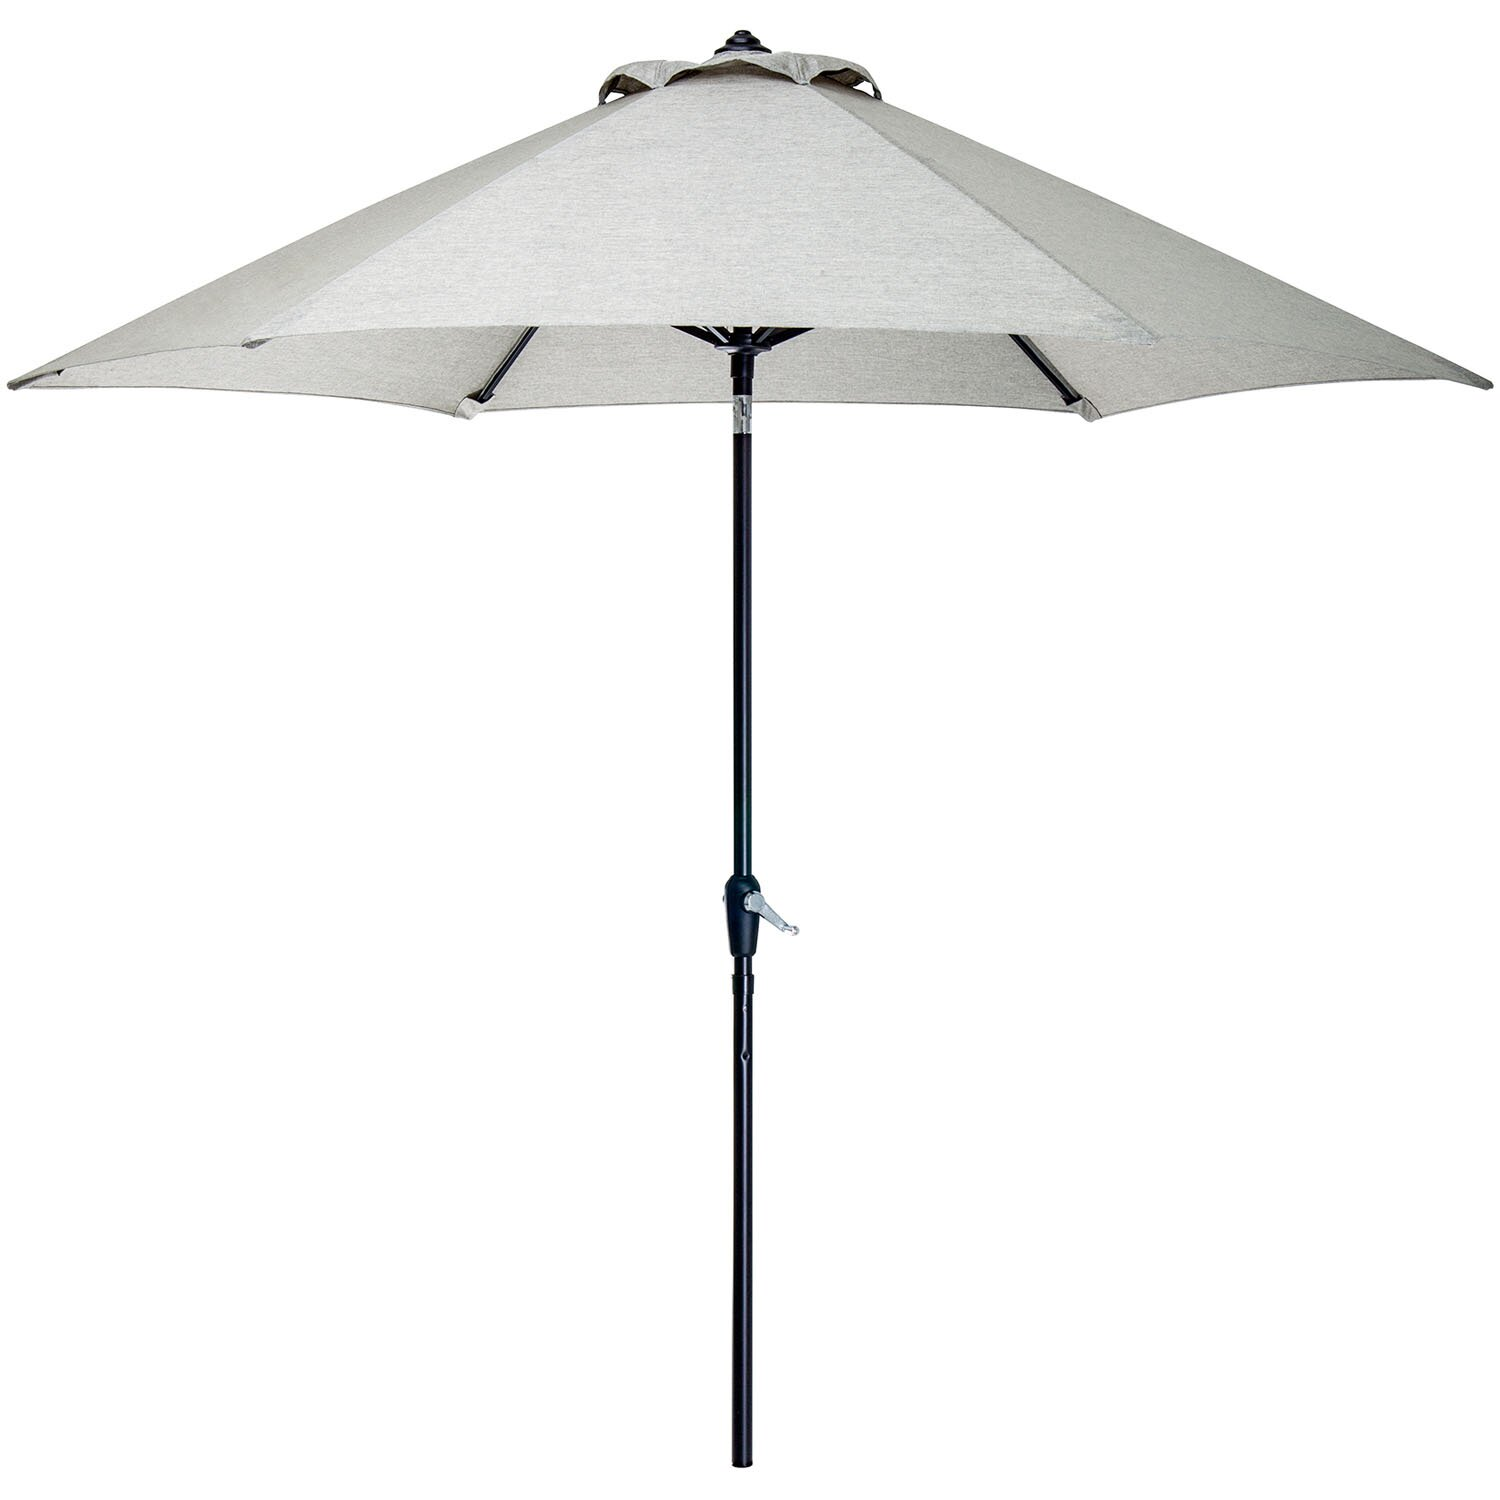 Patio Umbrella Table: Hanover Lavallette 7 Piece Dining Set With Cushions